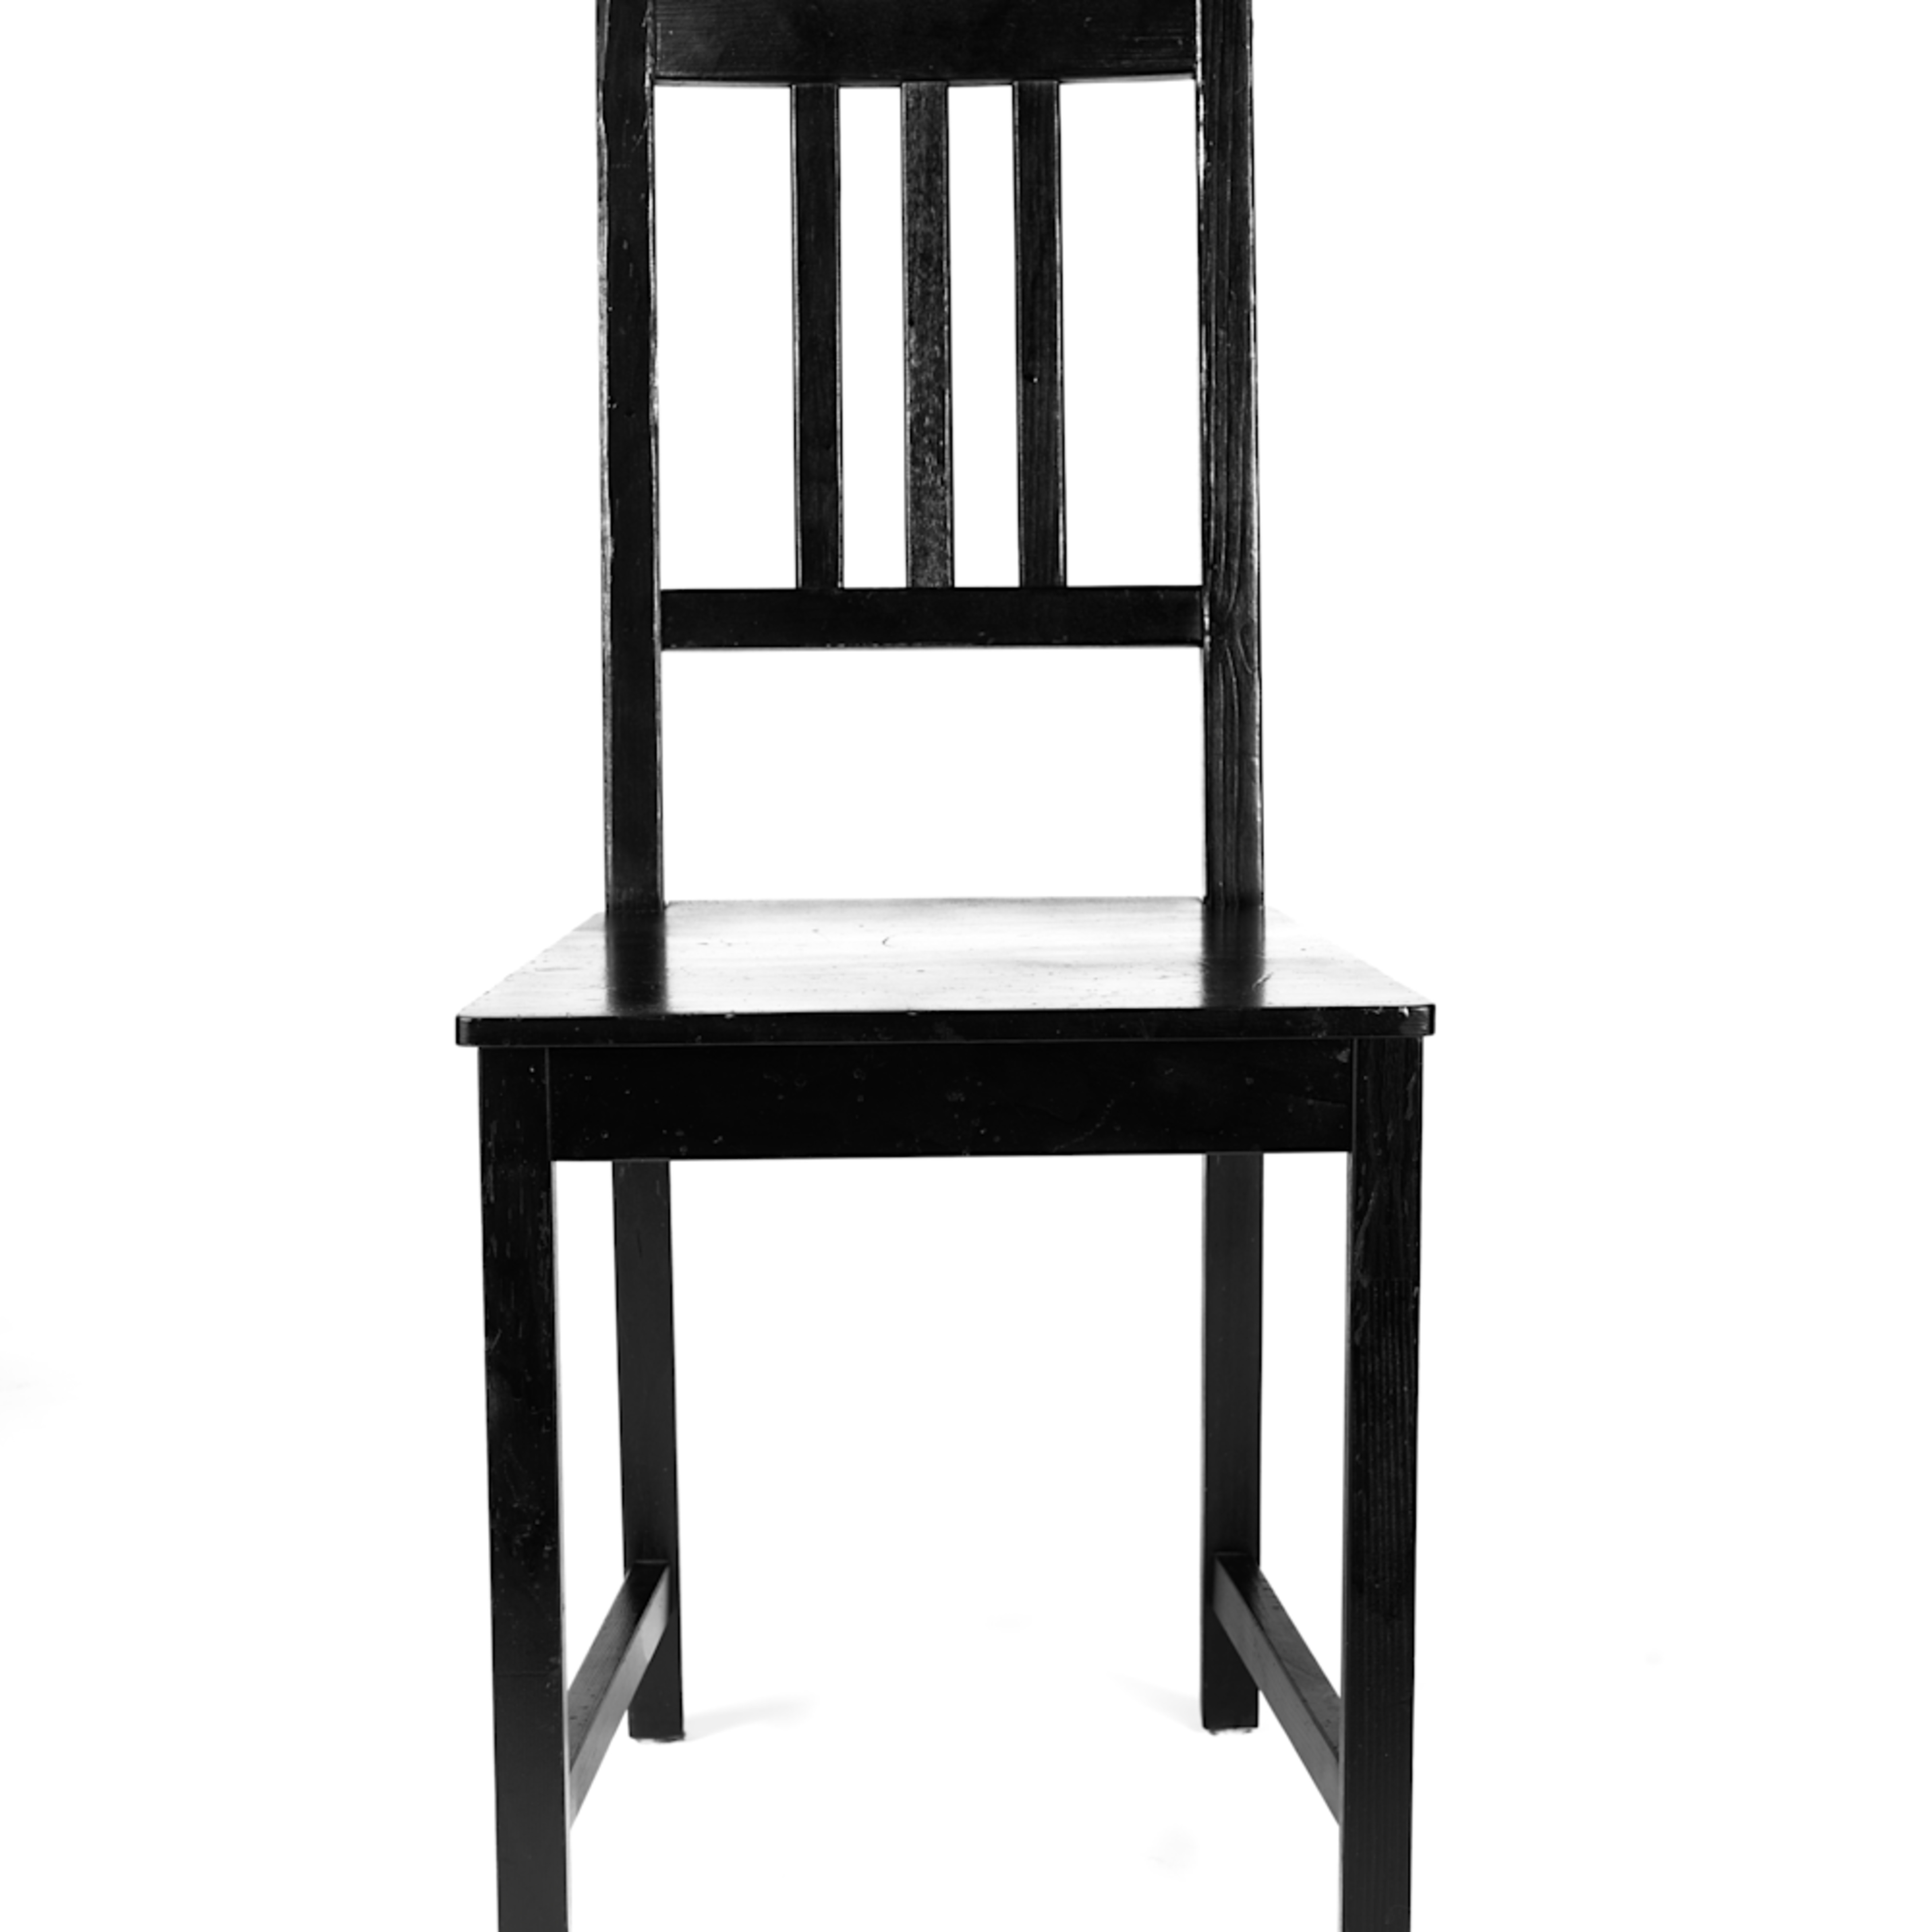 Chair two i3owq8